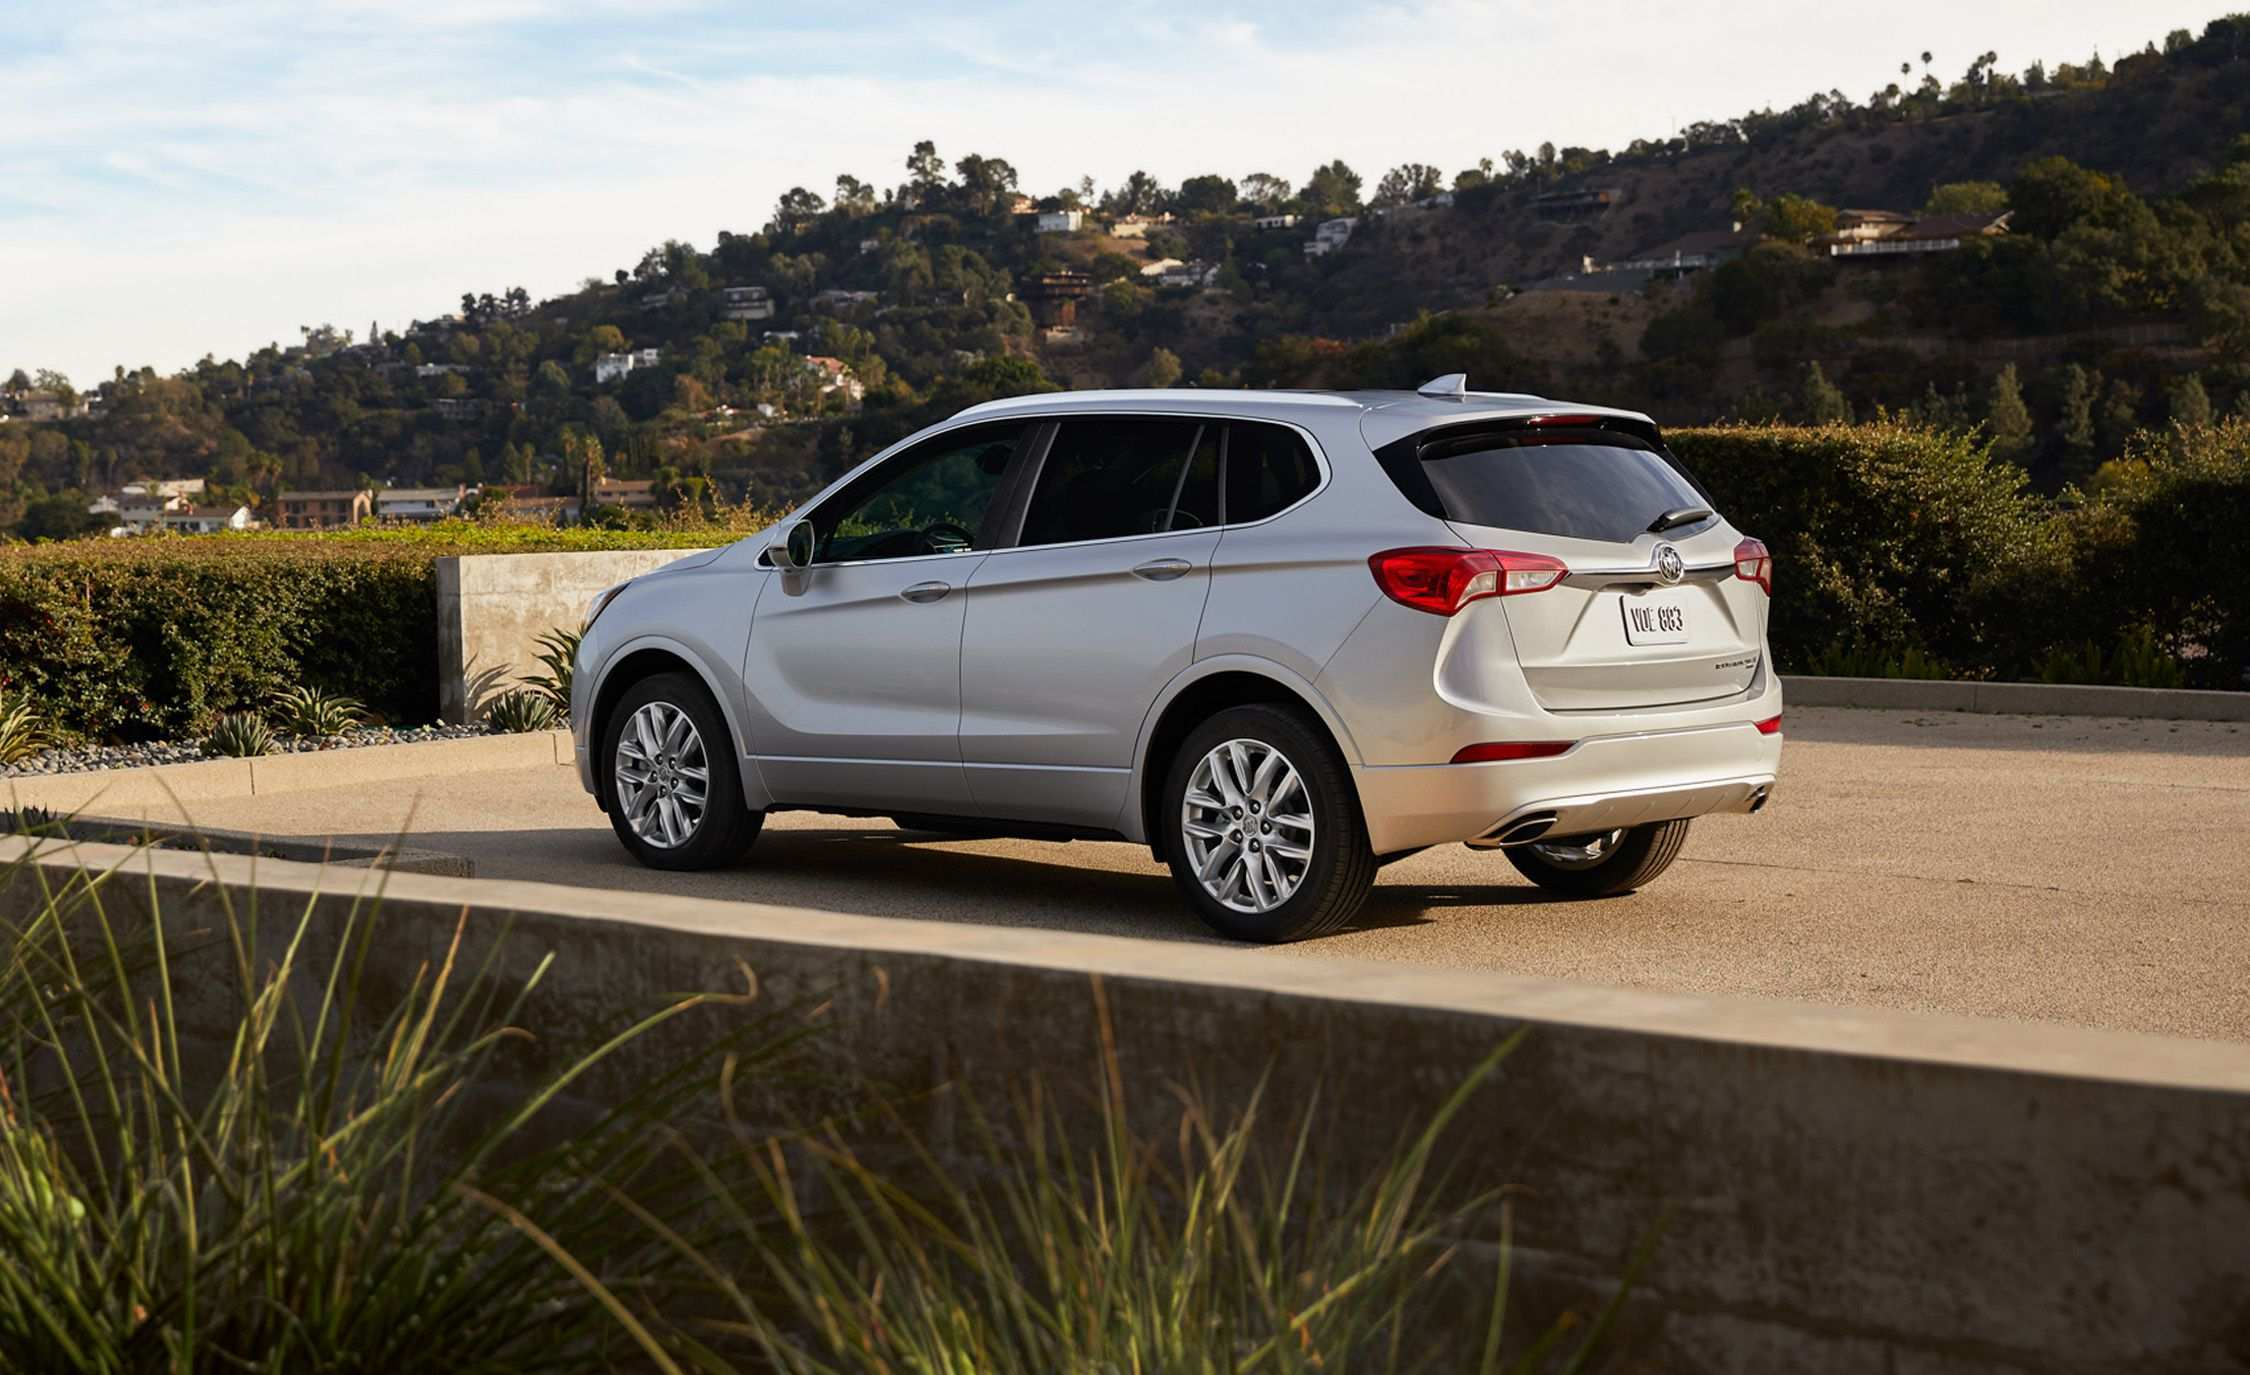 27 Great 2019 Buick Envision Configurations with 2019 Buick Envision